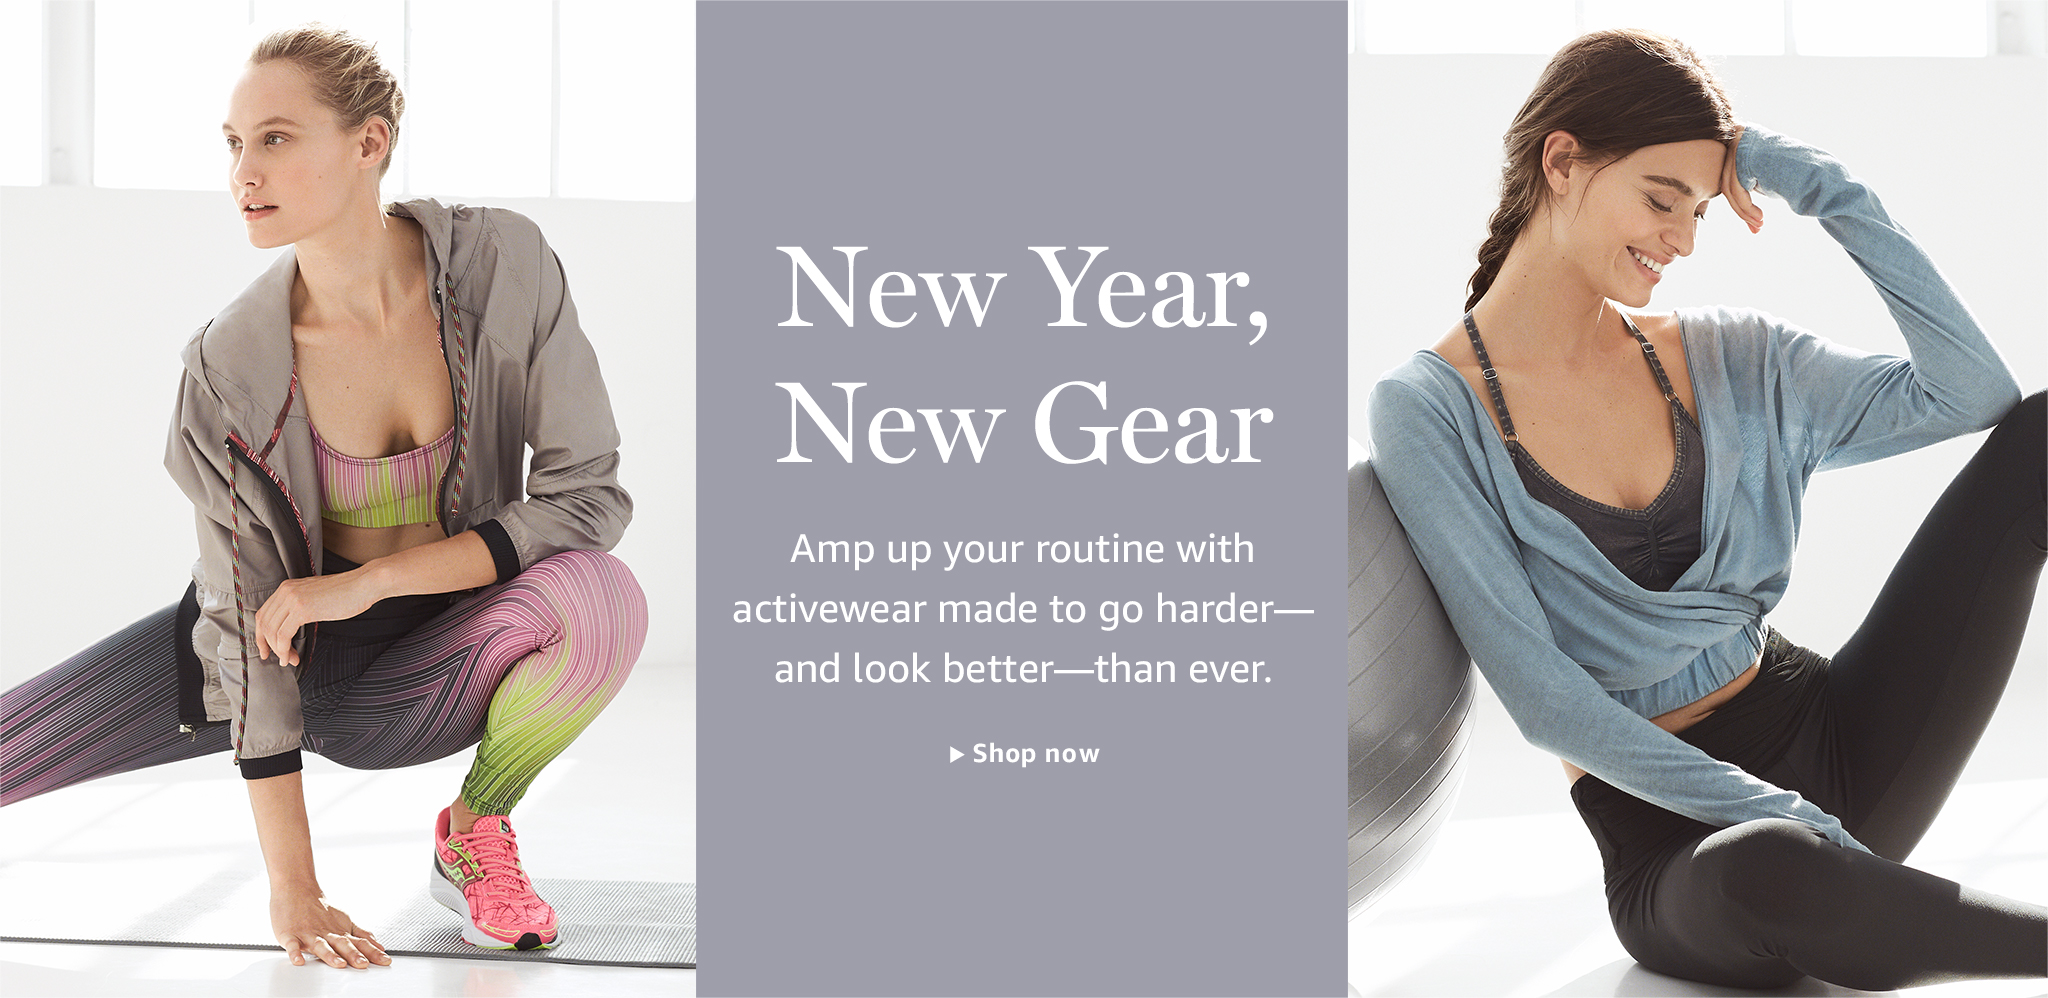 New Year, New Gear: Activewear